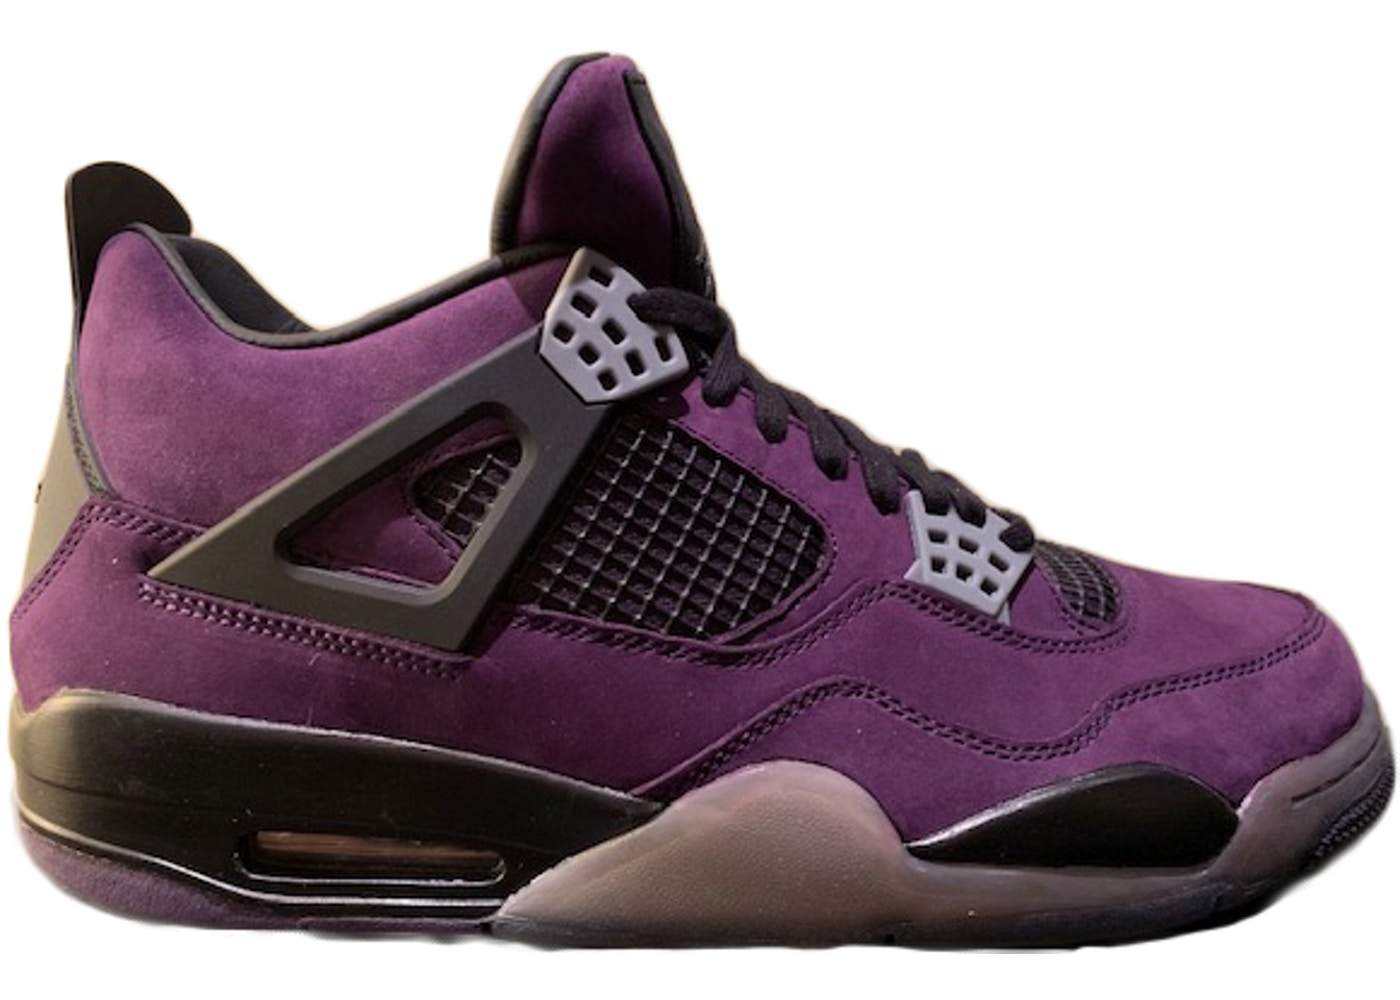 separation shoes 0de3c 482b5 Jordan 4 Retro Travis Scott Purple (Friends and Family)